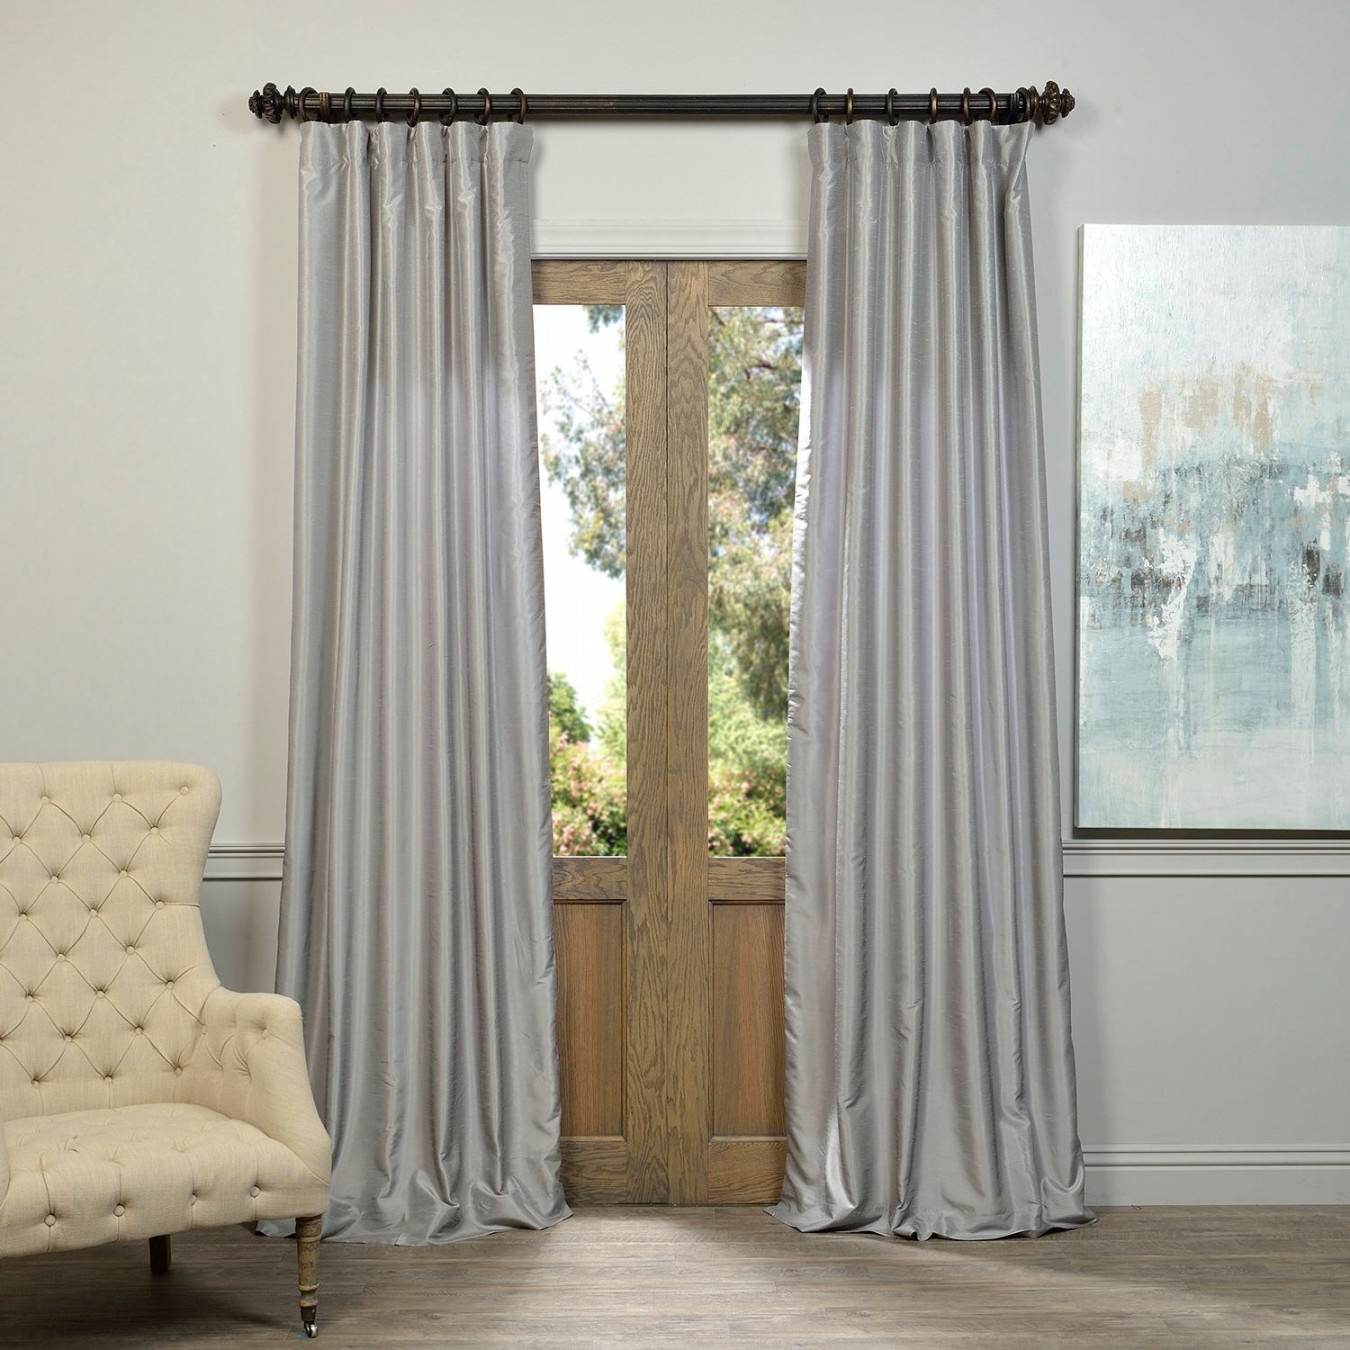 12 Silk Curtains Texture 2019 – Pinnedmtb With Regard To Ice White Vintage Faux Textured Silk Curtain Panels (View 1 of 20)